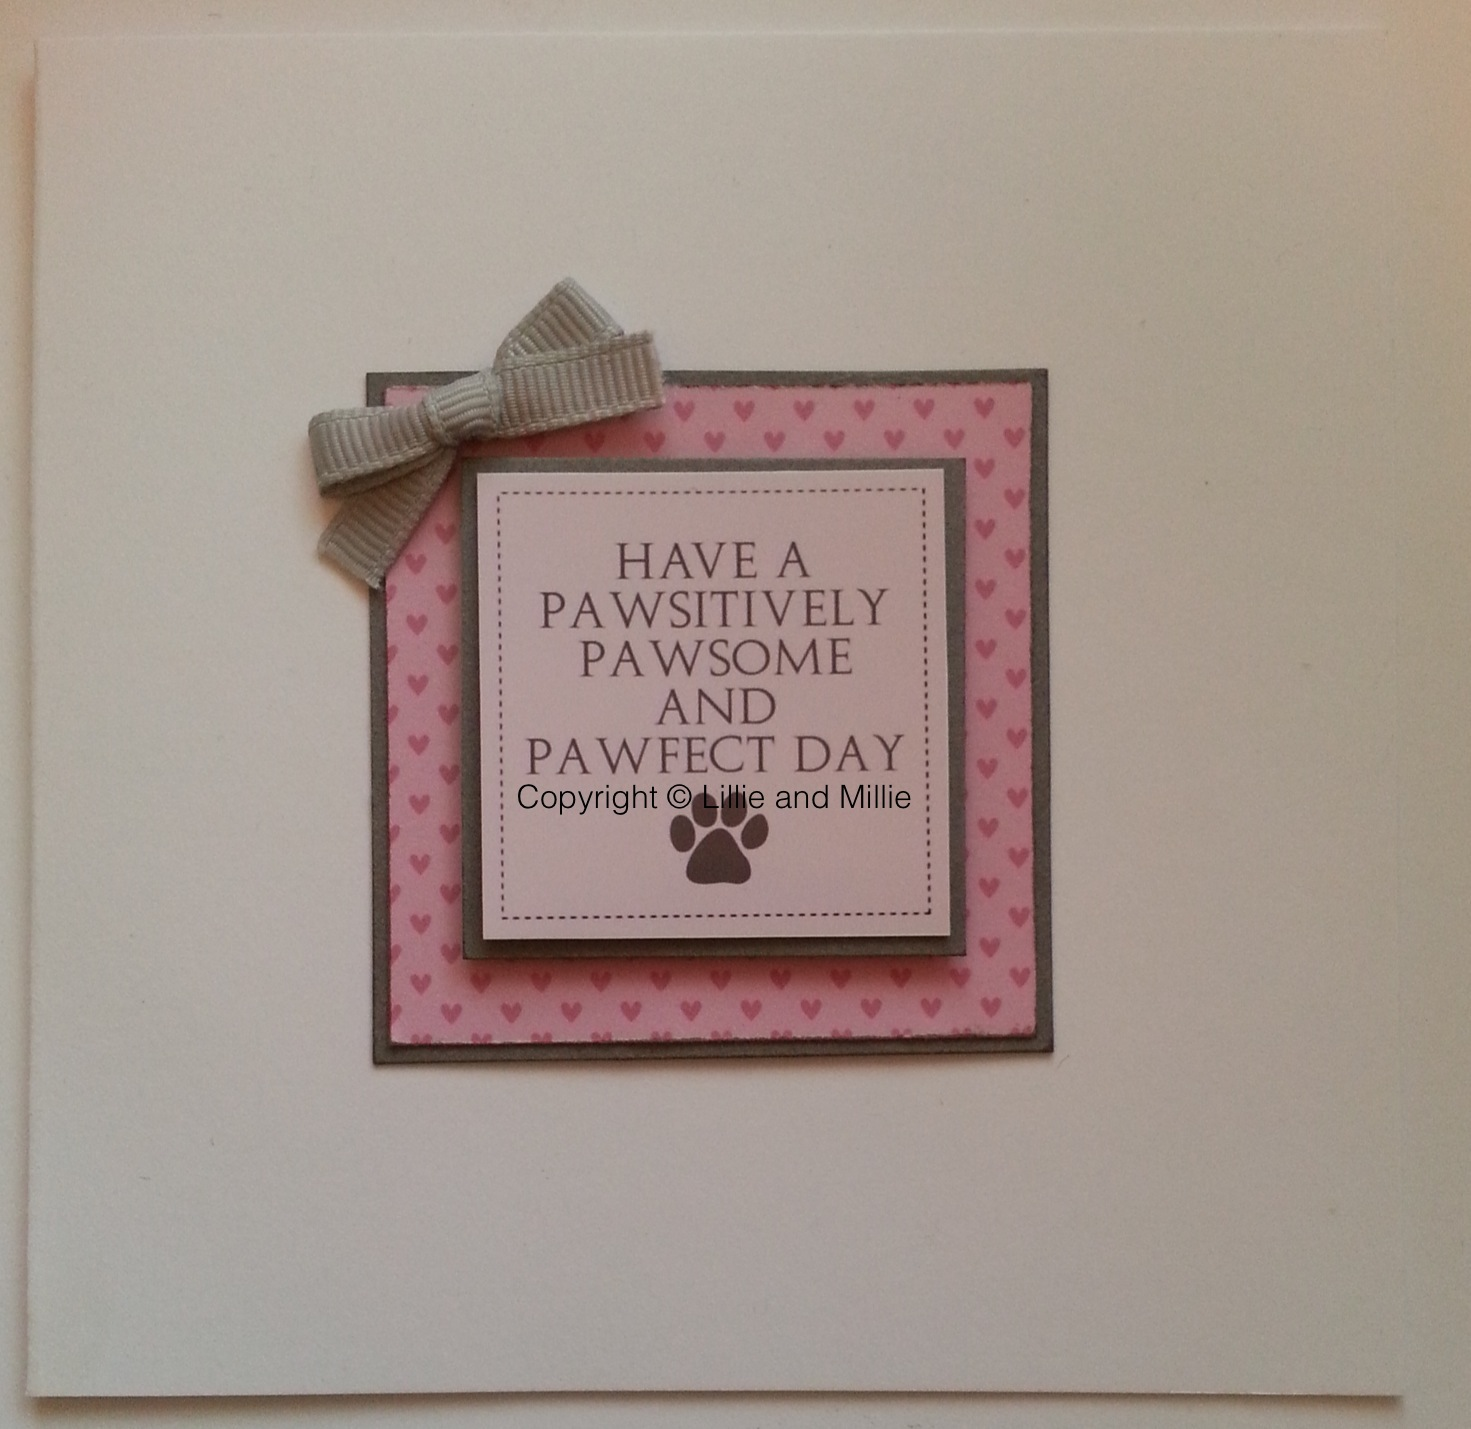 Handcrafted Handmade Dog Greetings Card Pawsome Pawfect Pawsitively